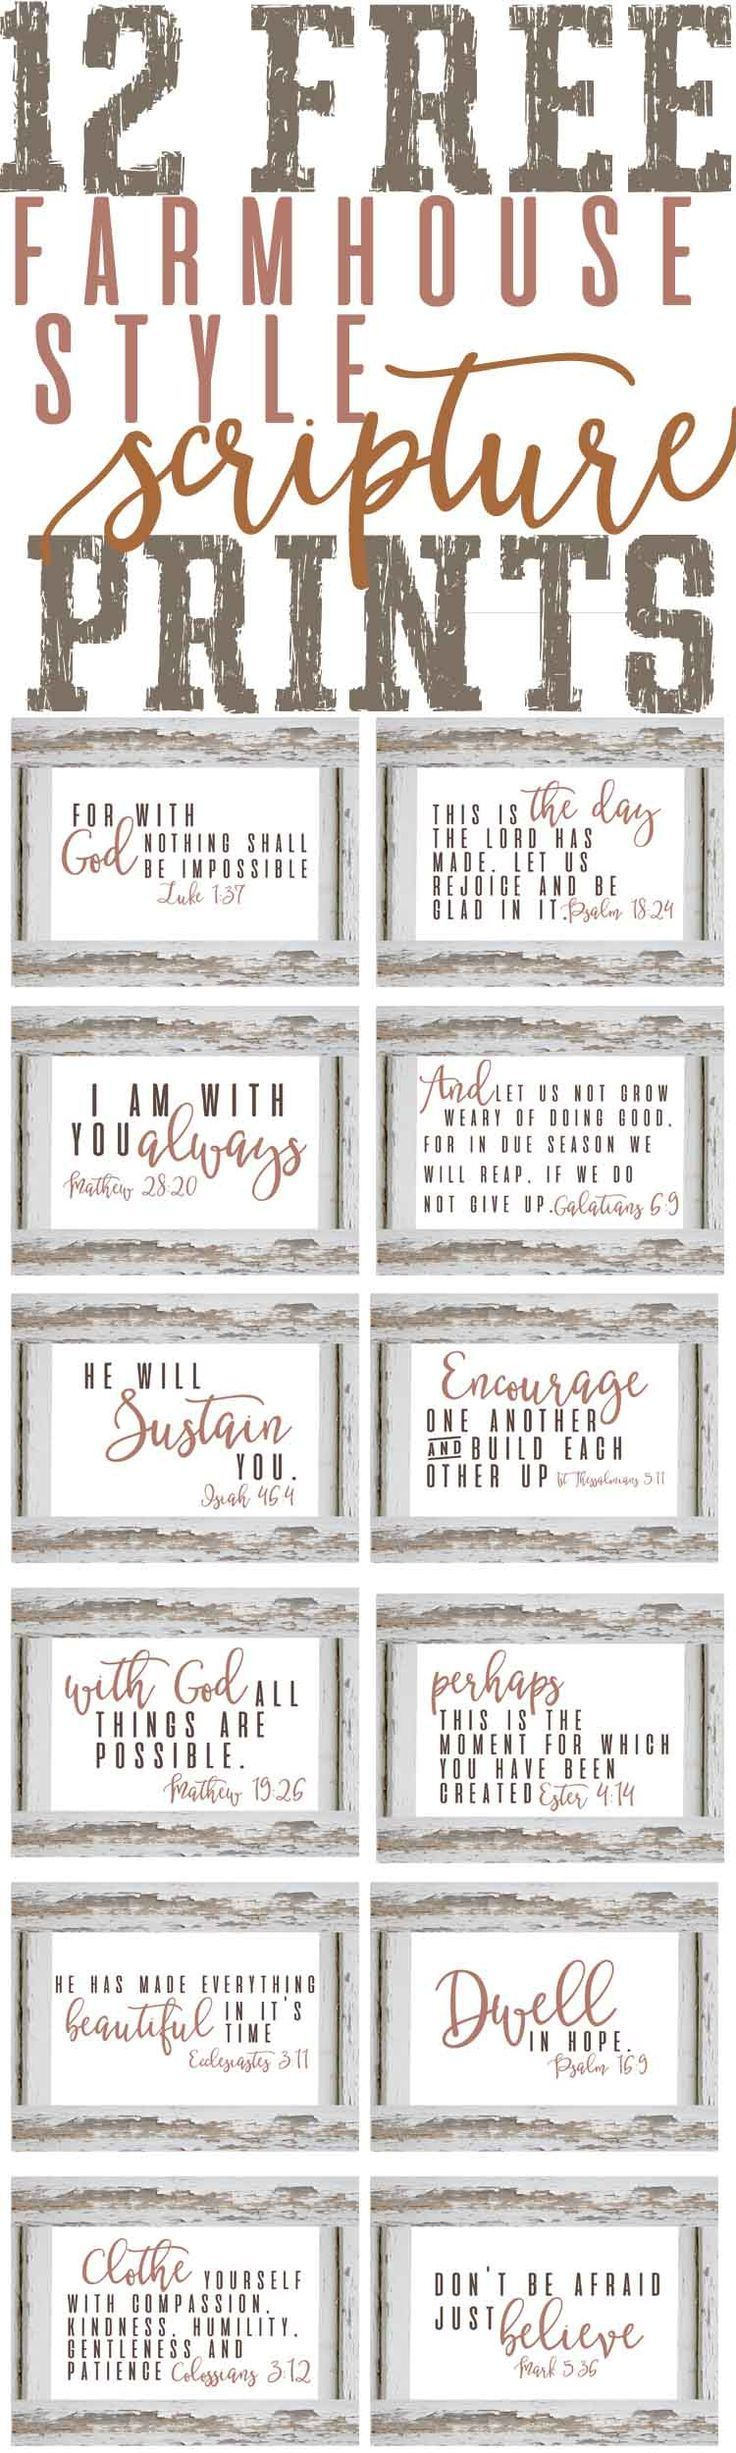 Free Planner & Organization Printables — The Mountain View Cottage